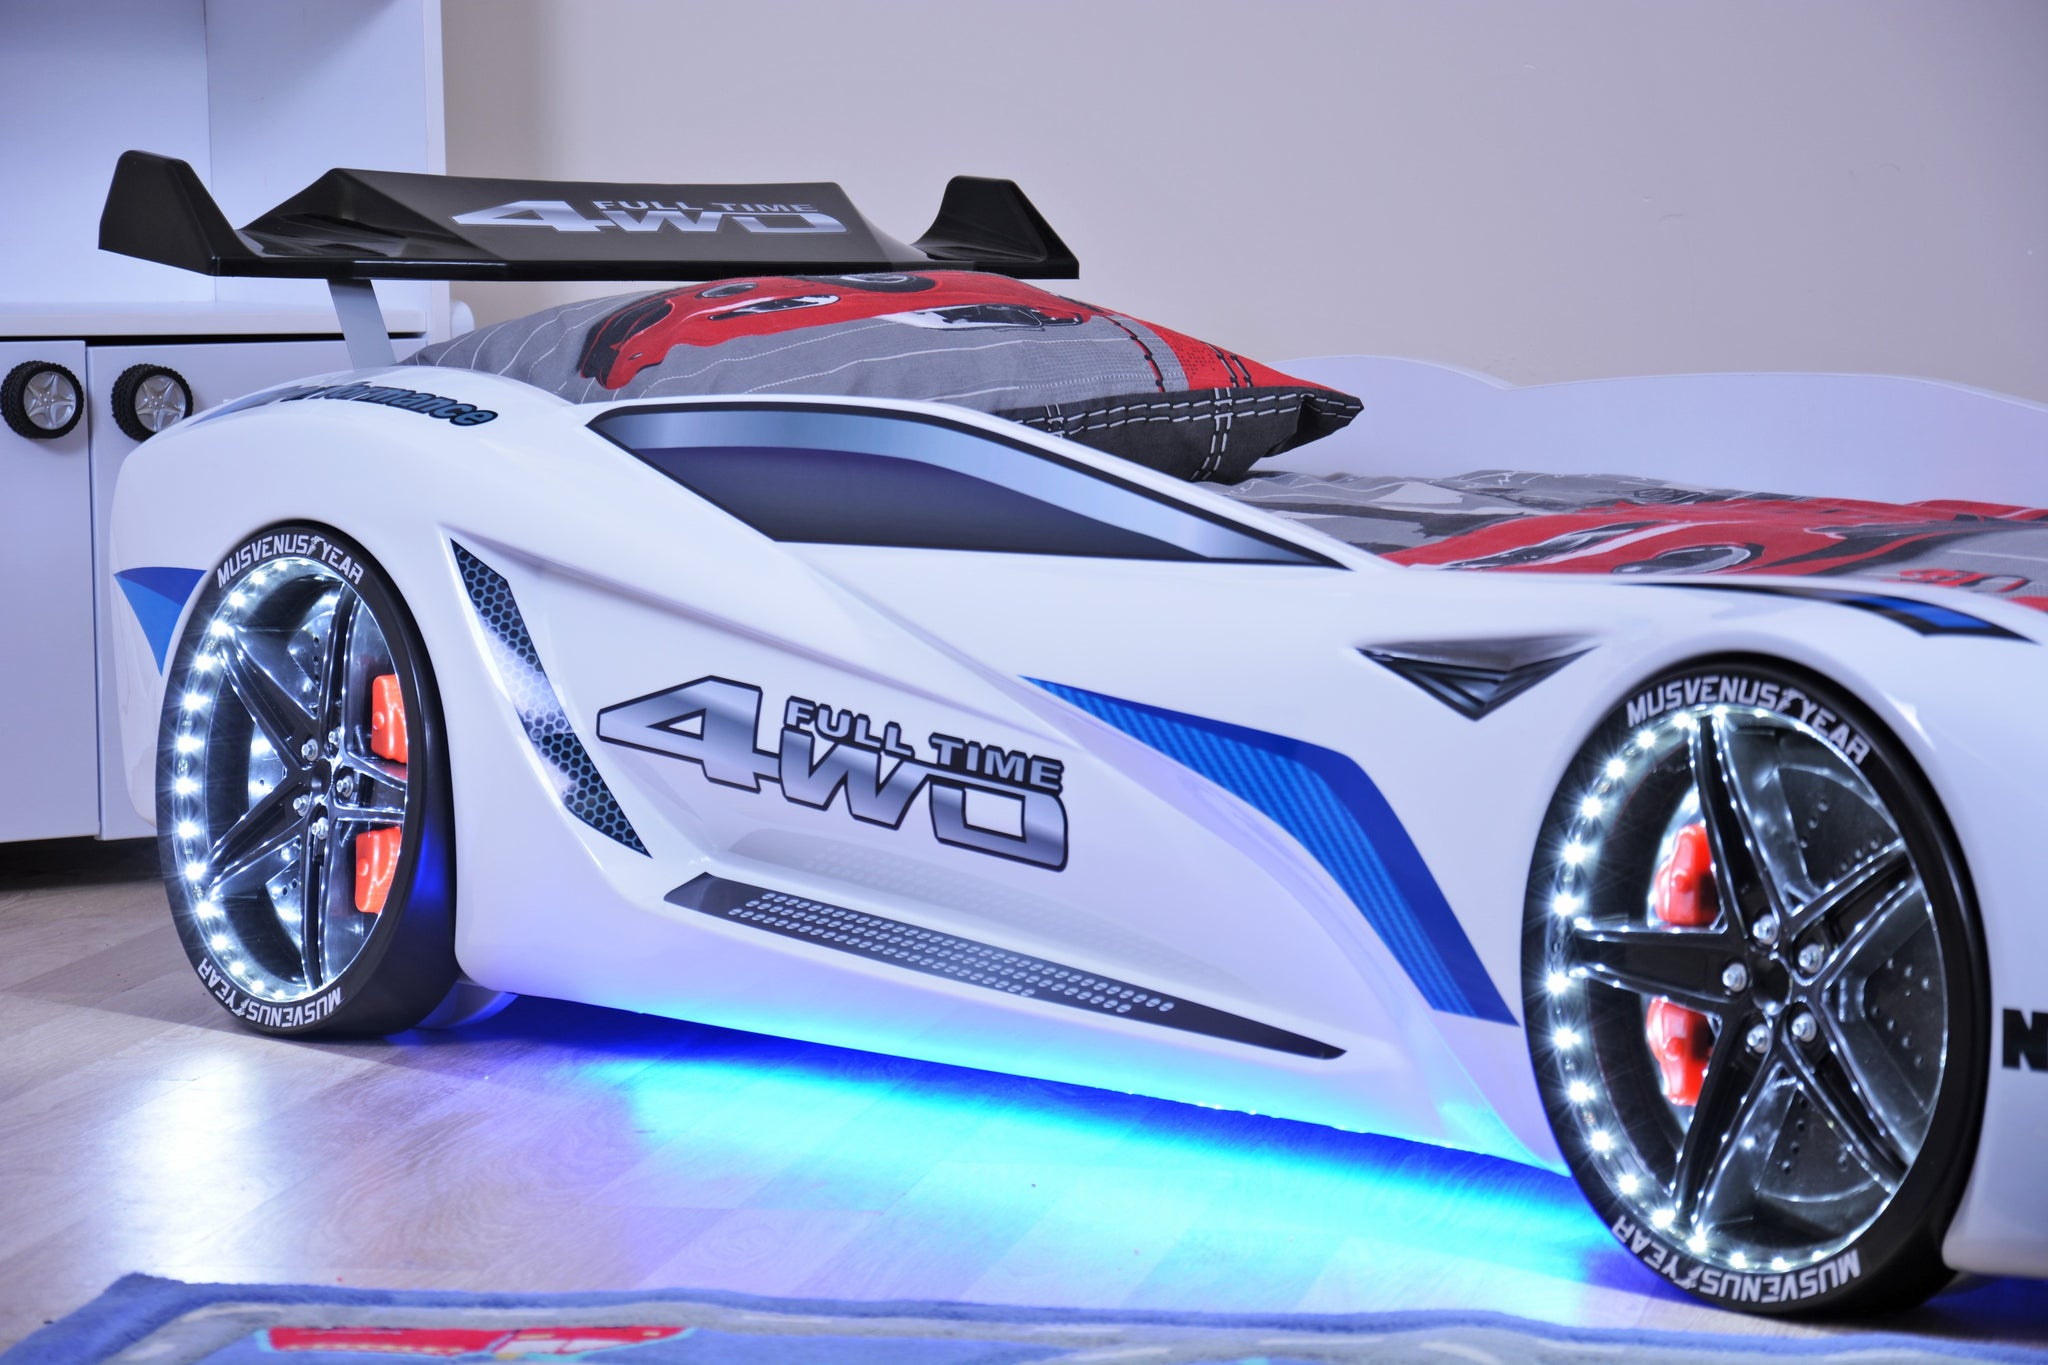 Flash Gt Premium Euro Racing Car Bed With Lights And Sounds Red